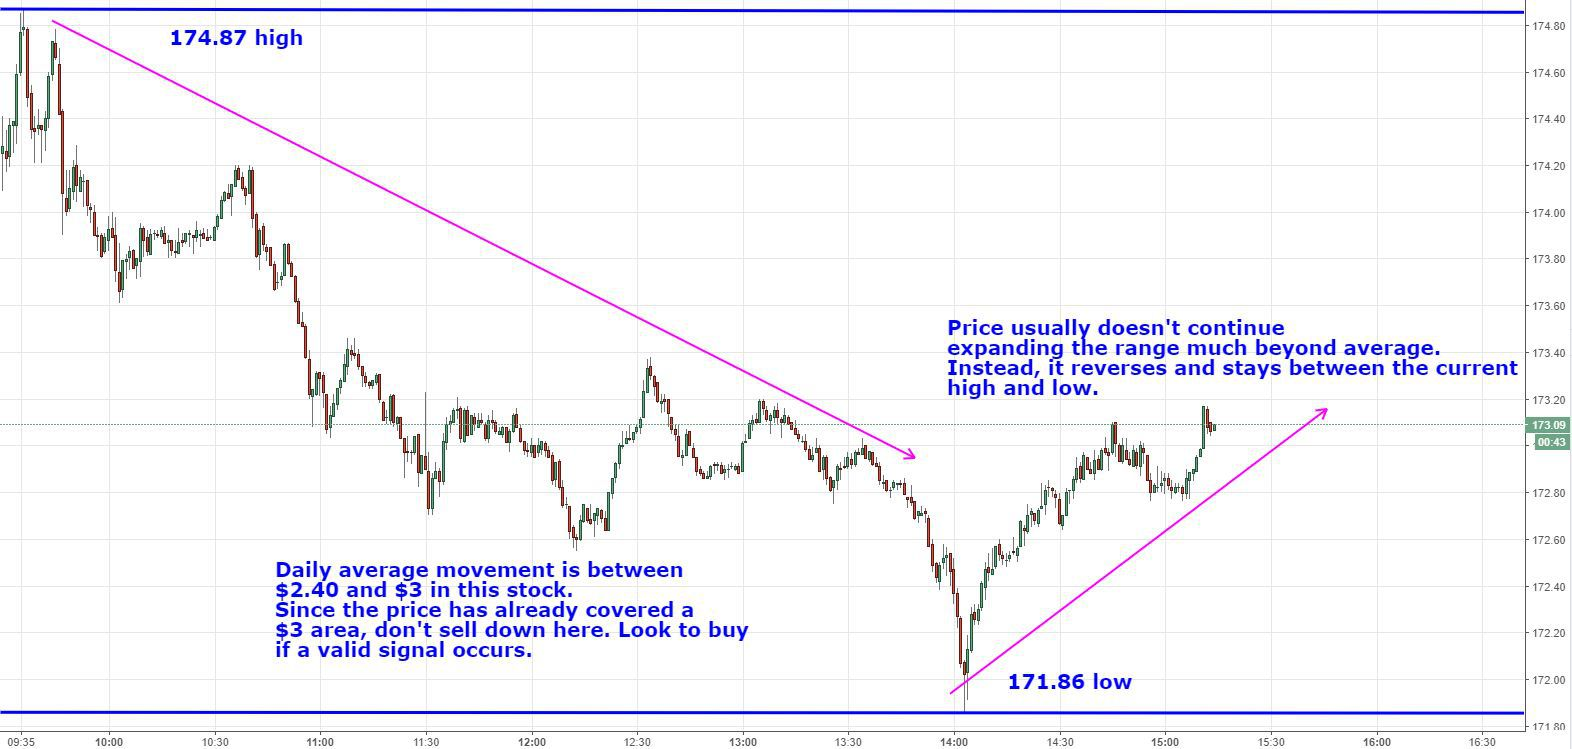 How Average True Range (ATR) Can Improve Your Trading